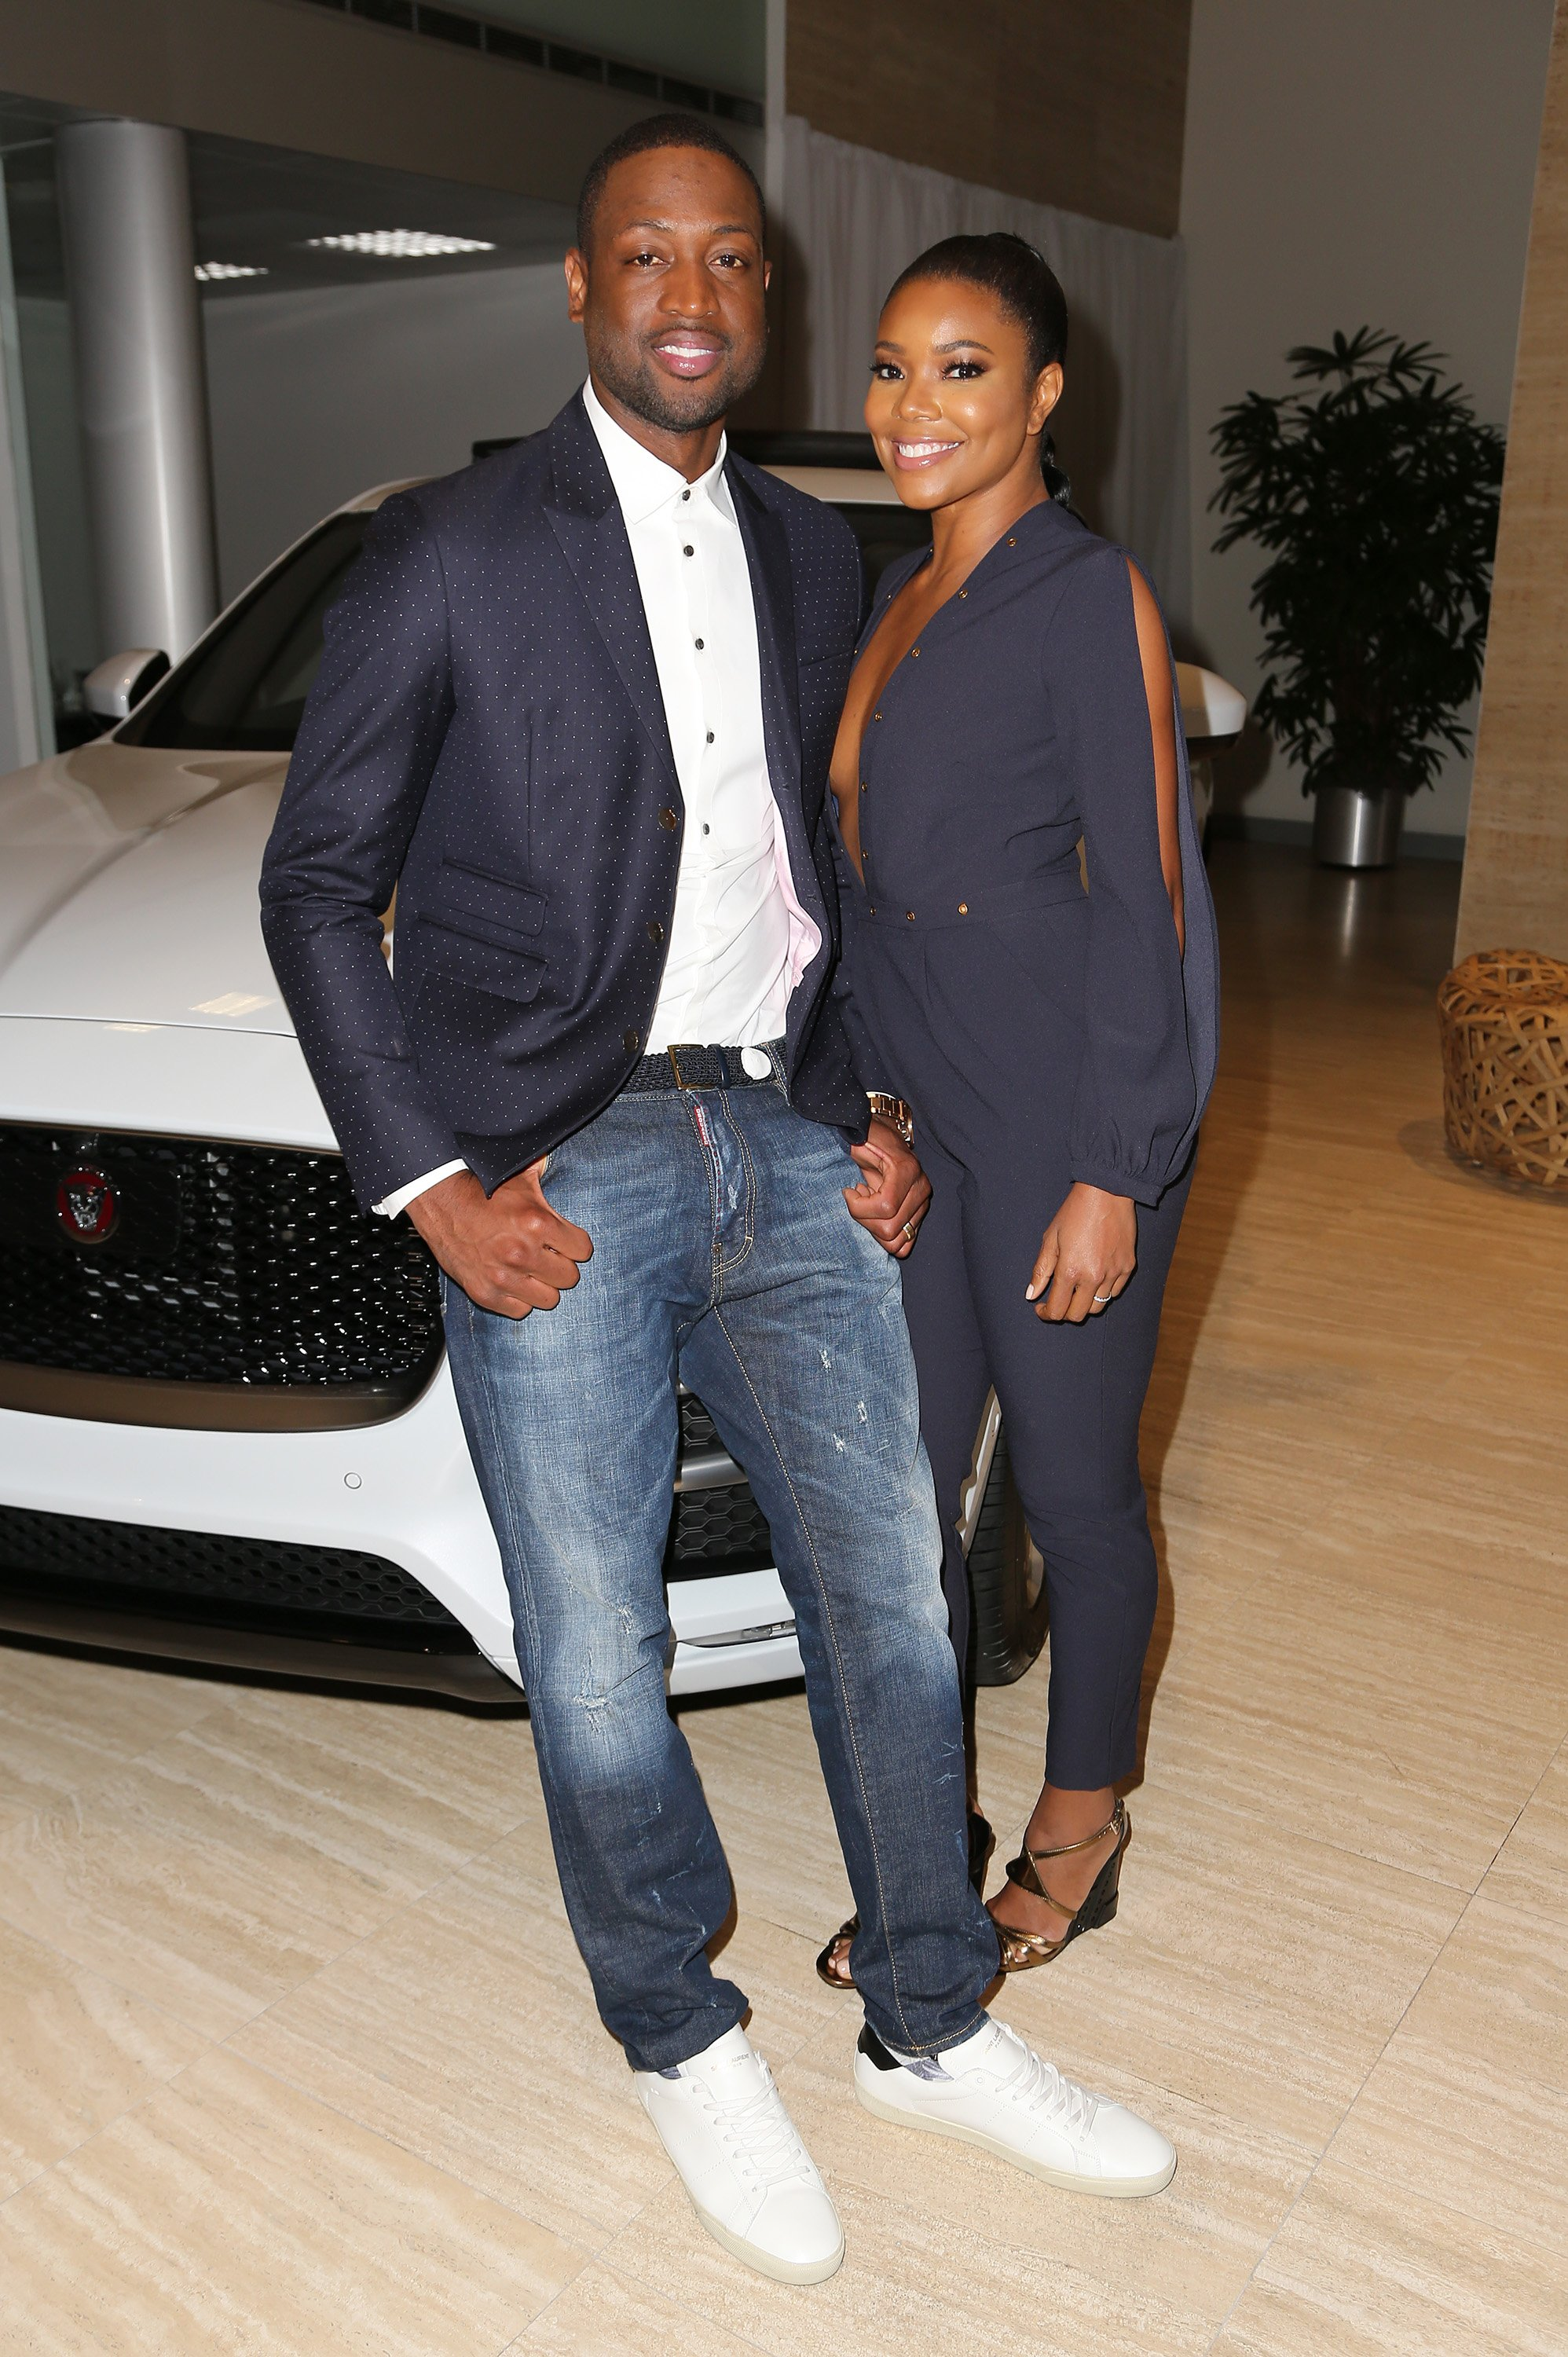 Dwyane Wade and Gabrielle Union at his new car launch at The Collection on June 15, 2016 in Miami, Florida. | Source: Alexander Tamargo/Getty Images